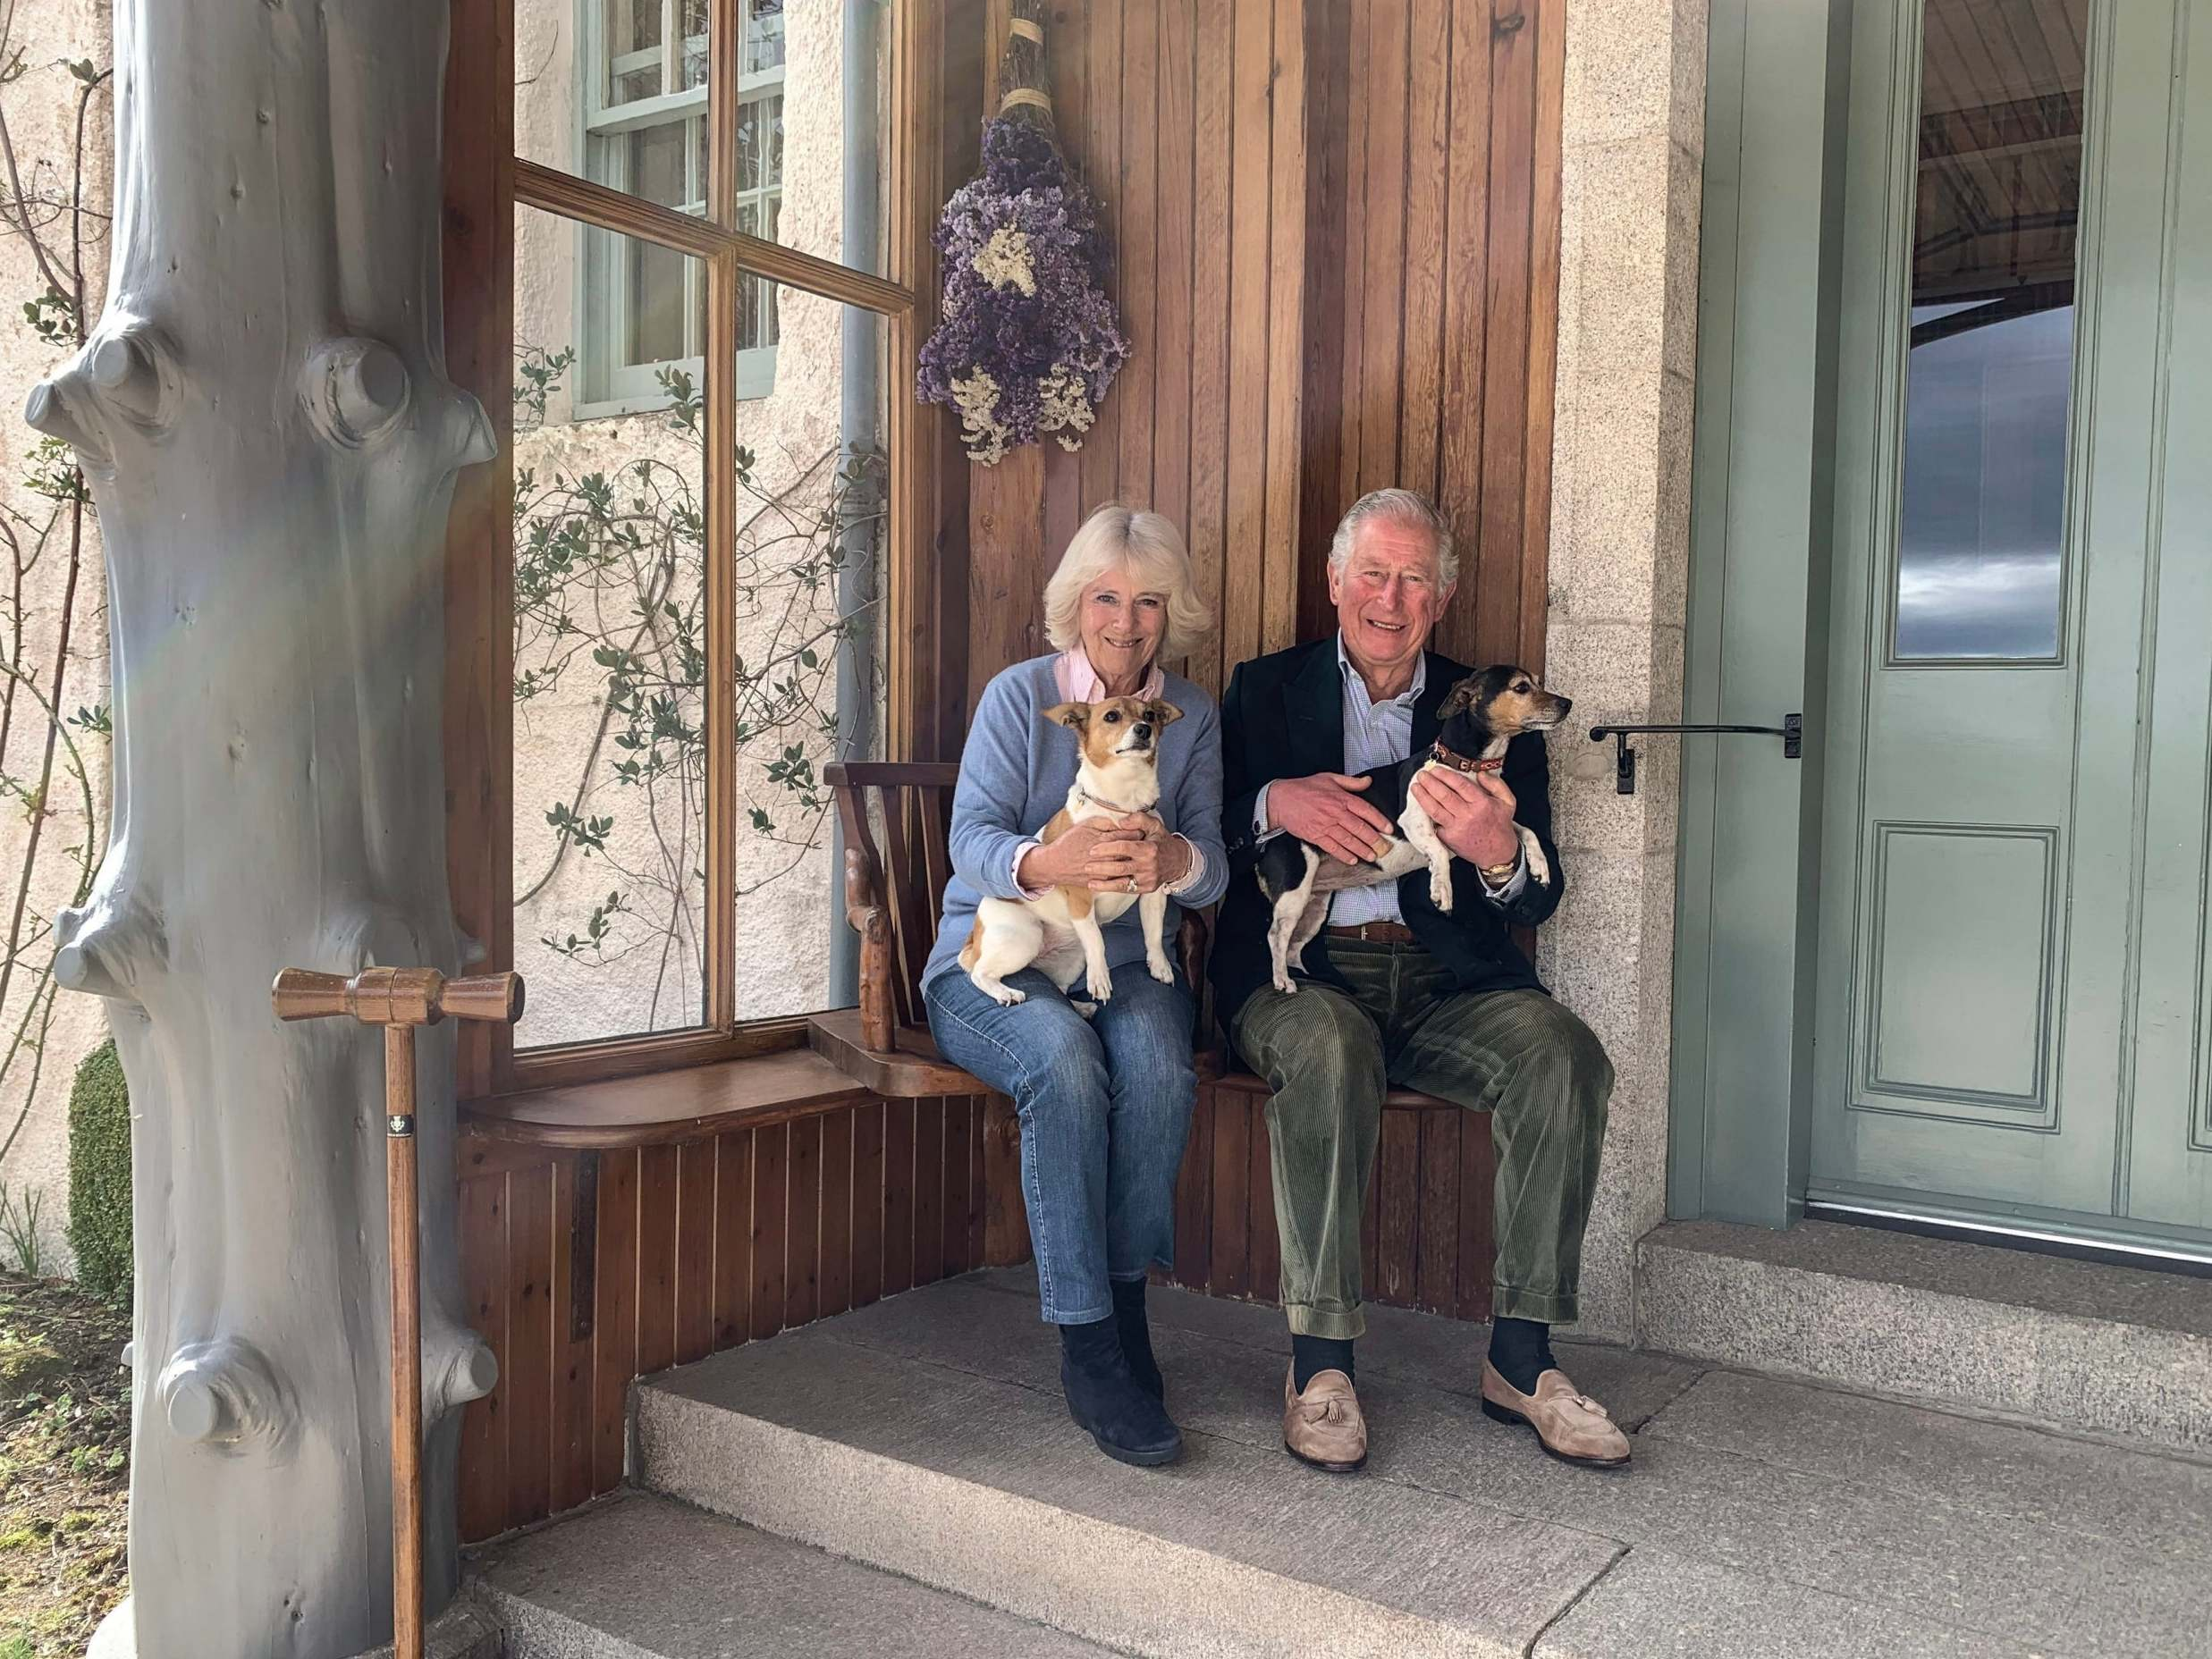 Prince Charles and Camilla mark 15th anniversary with new photograph holding their dogs